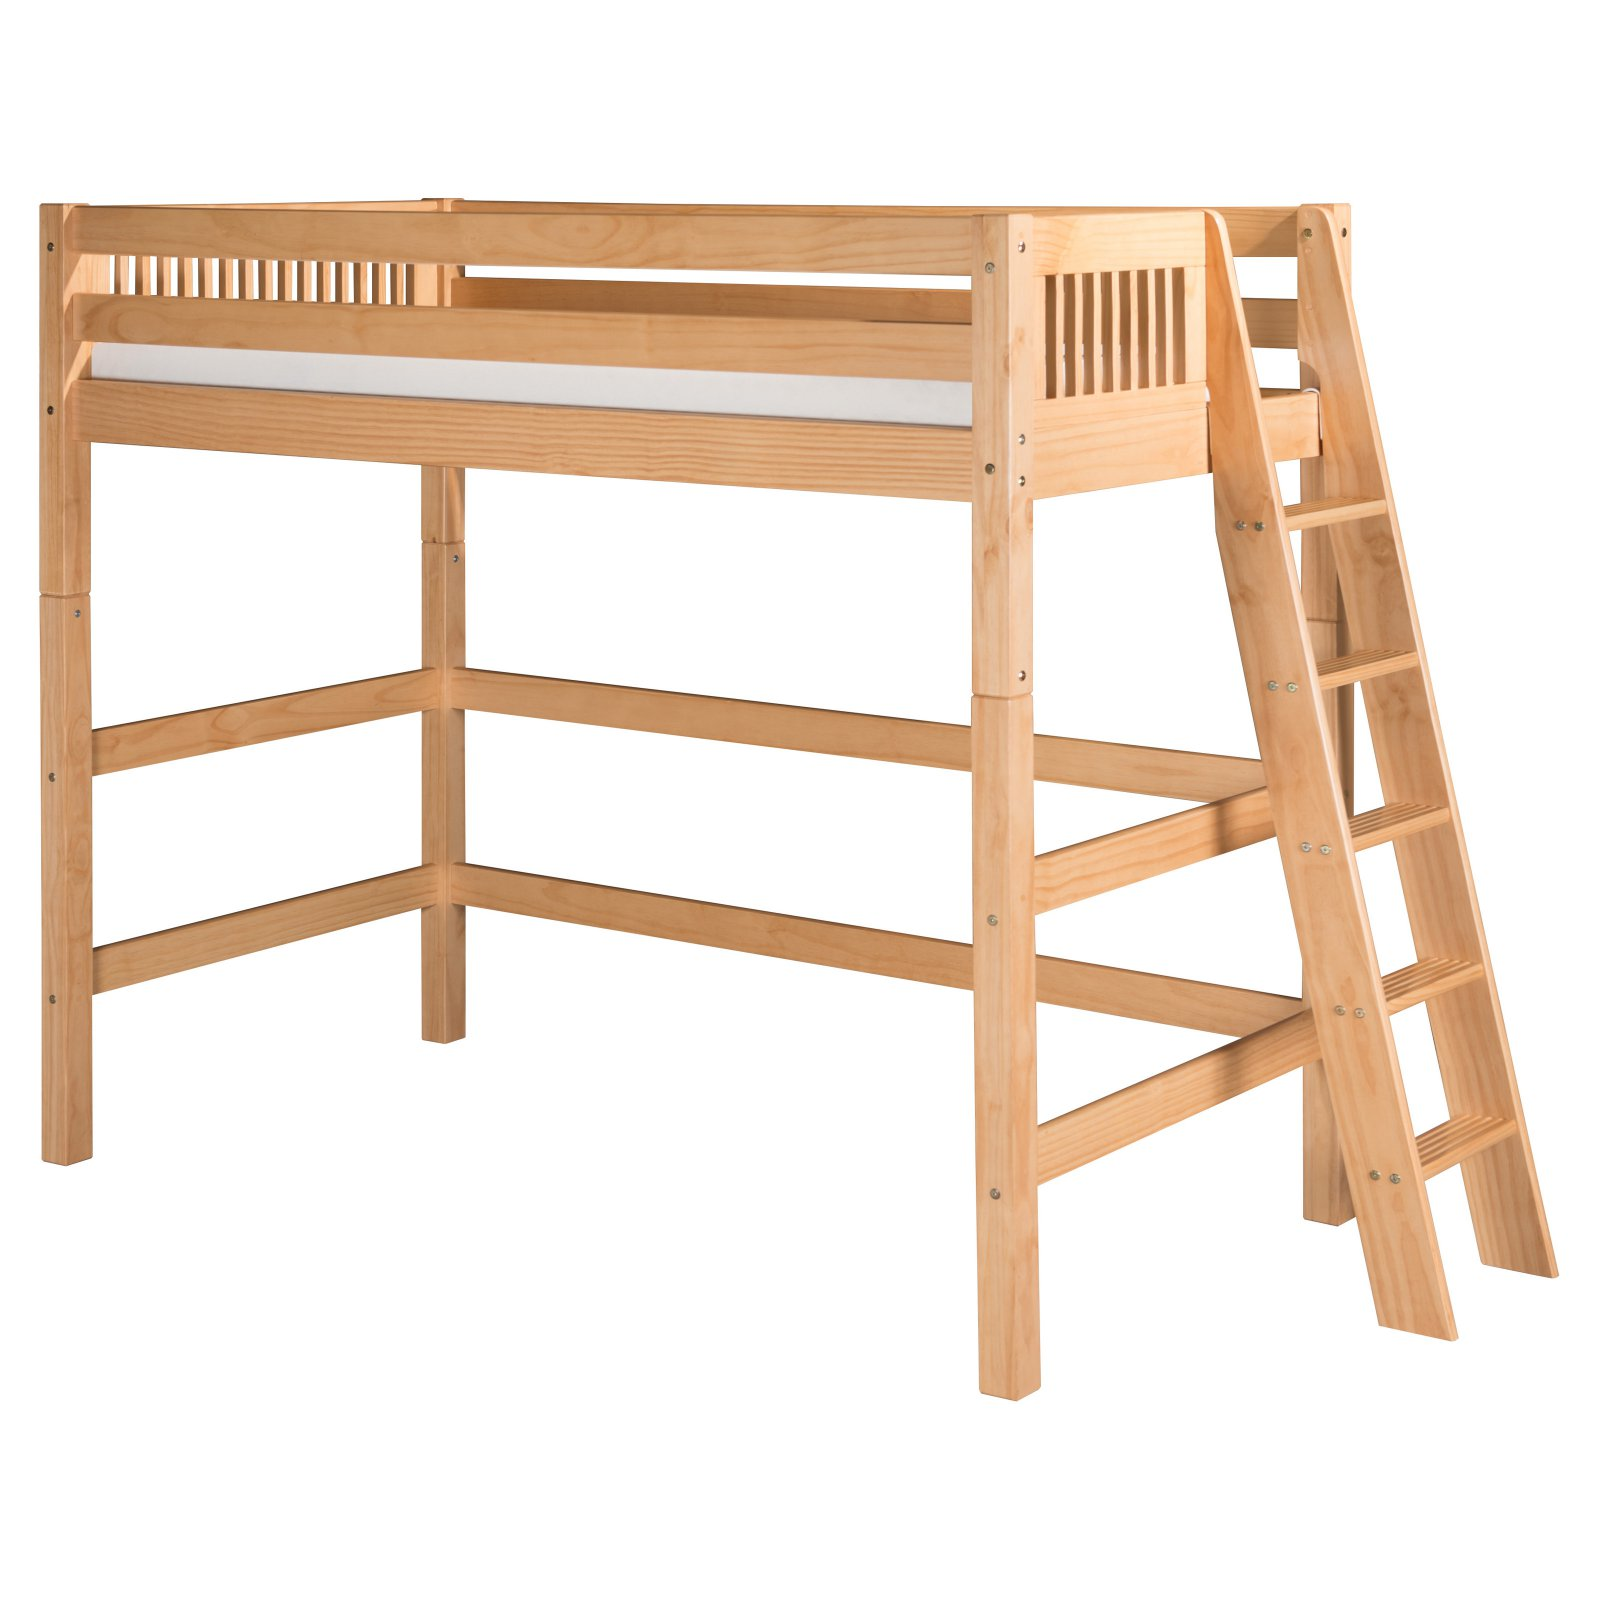 Camaflexi Mission Headboard High Loft Bed